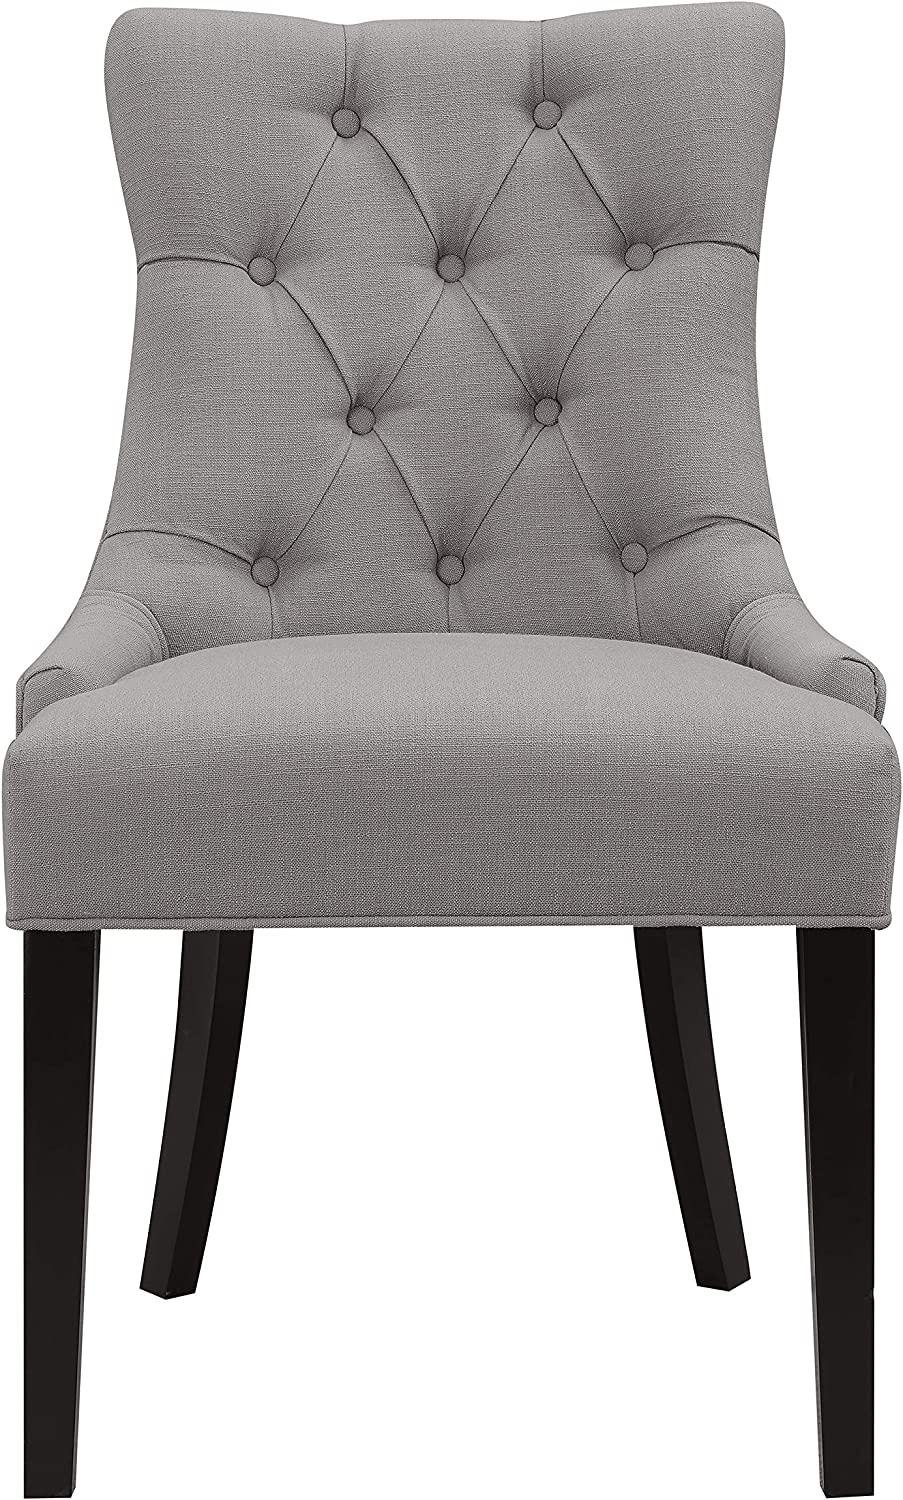 Right2Home Grey Button Tufted Dining Chair, Gray